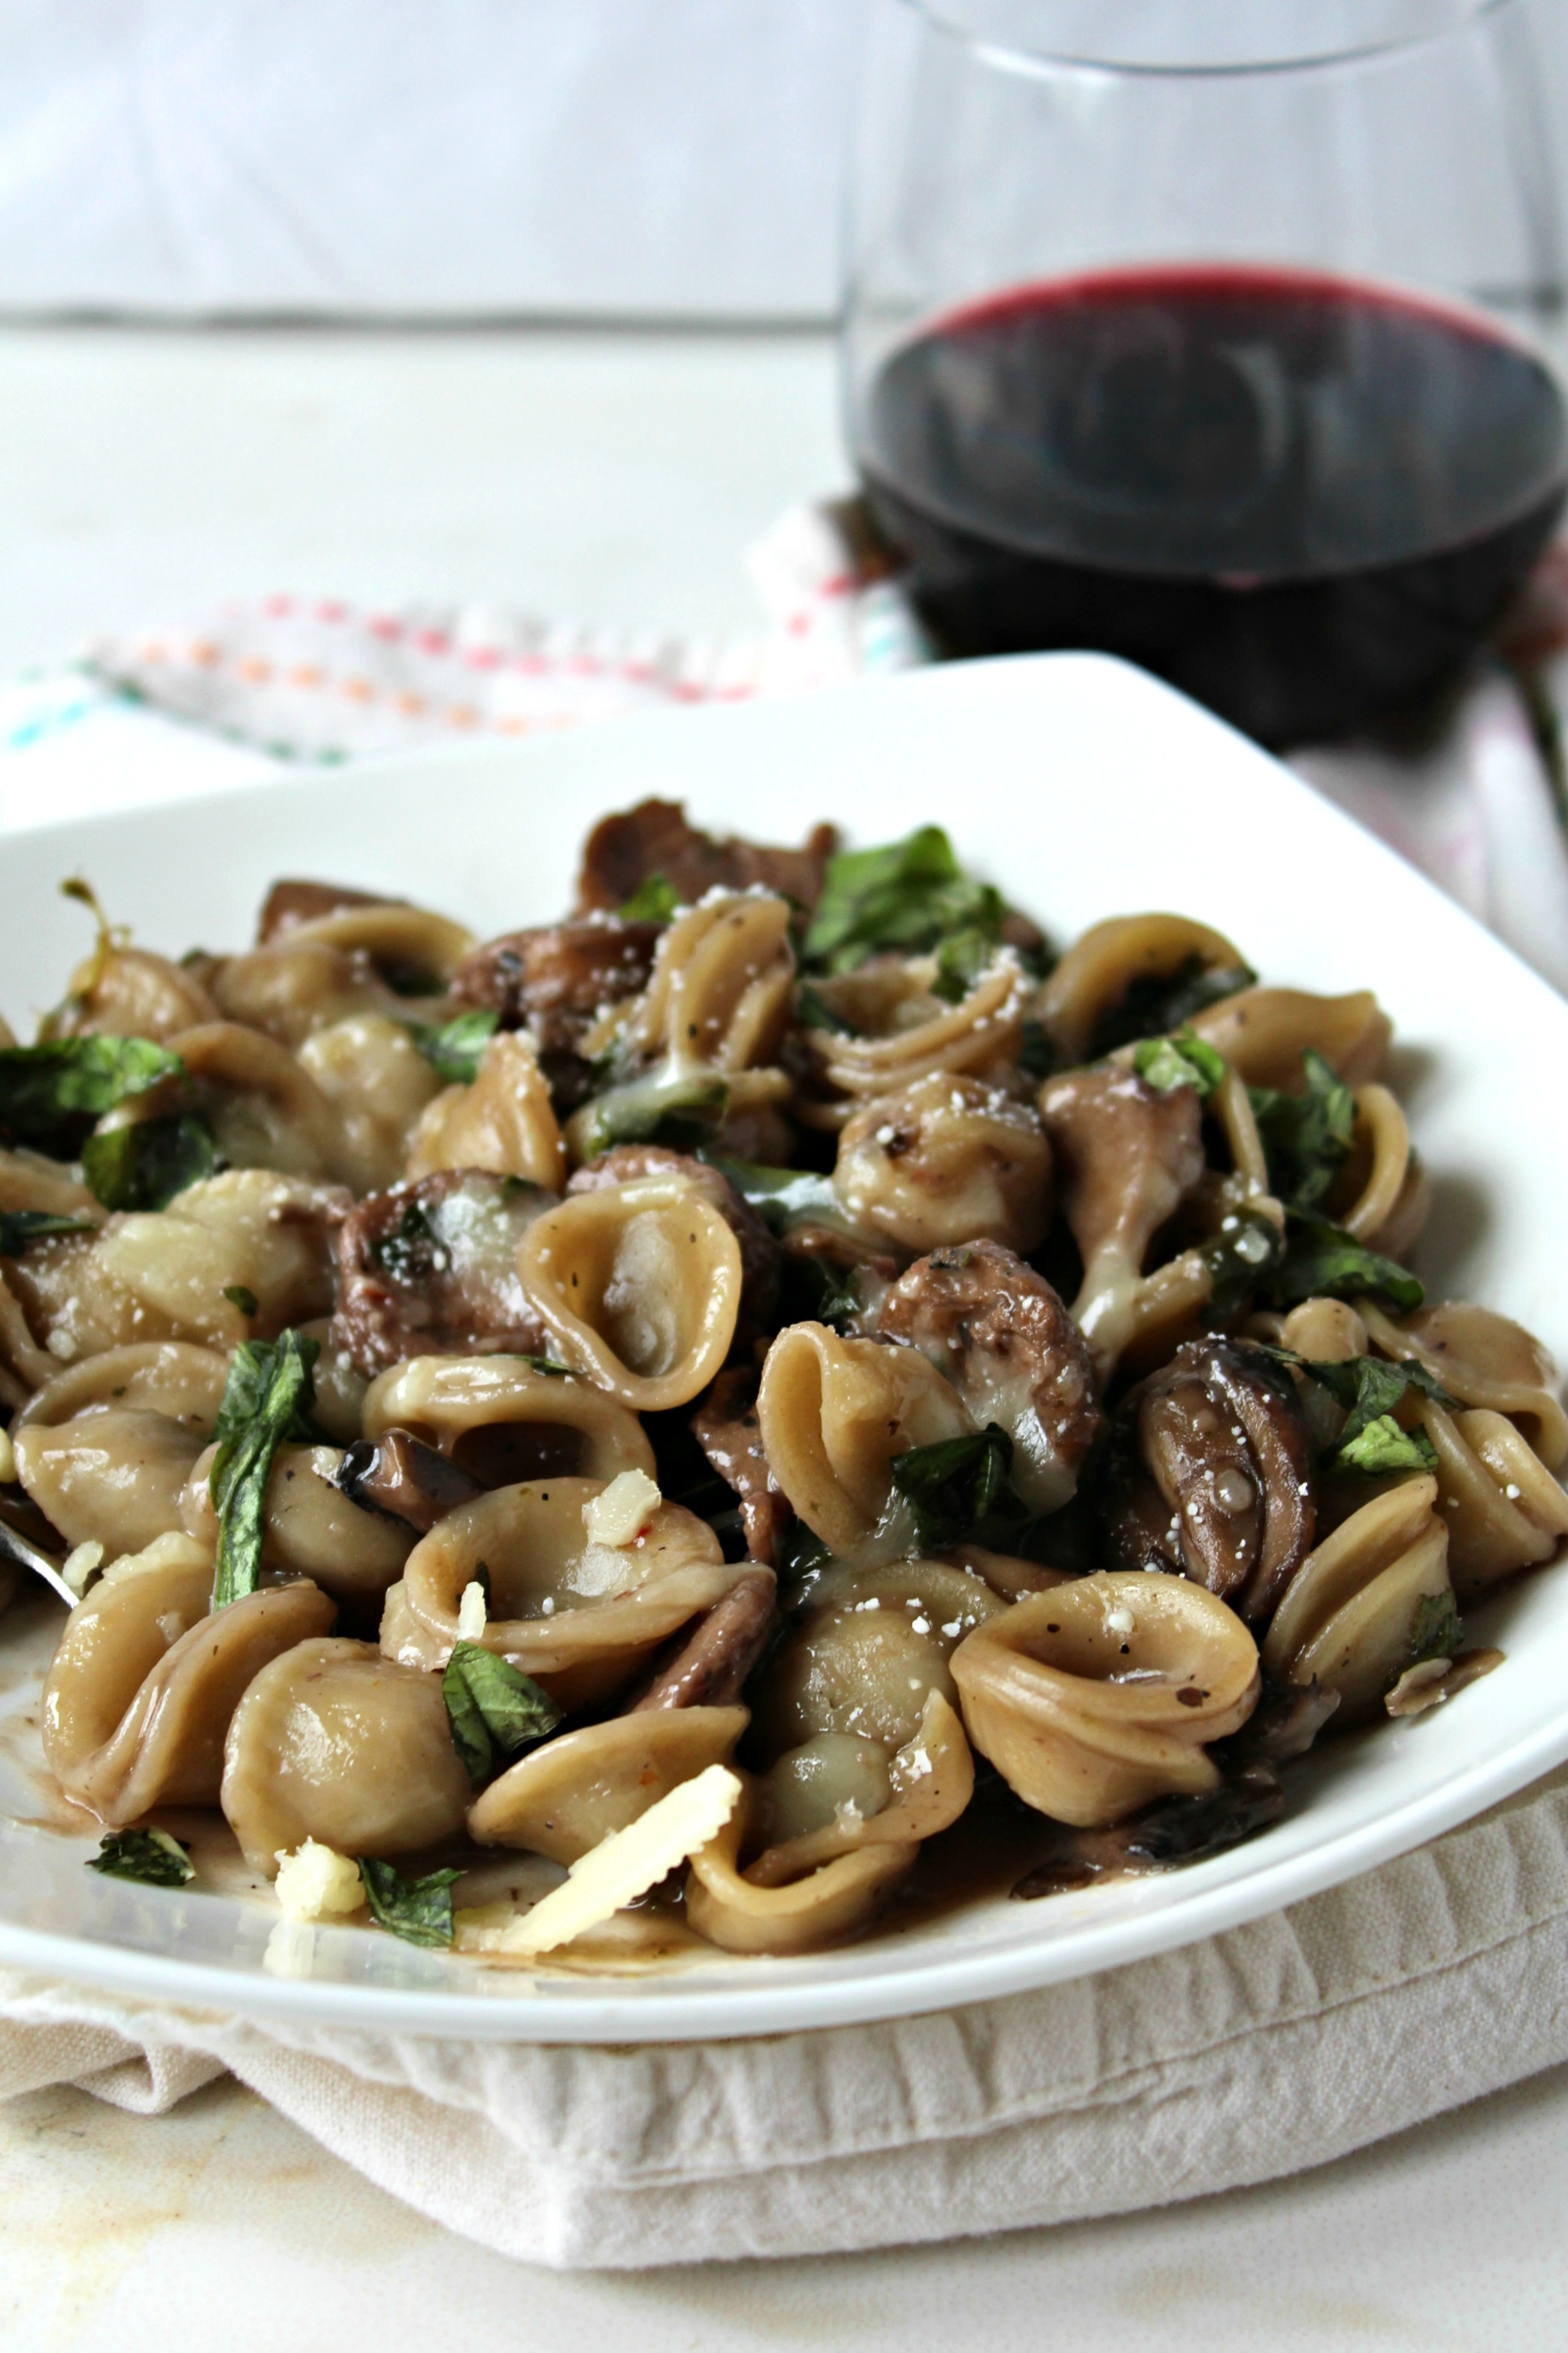 One Pot Pasta with Swiss Chard, Mushrooms and Sausage